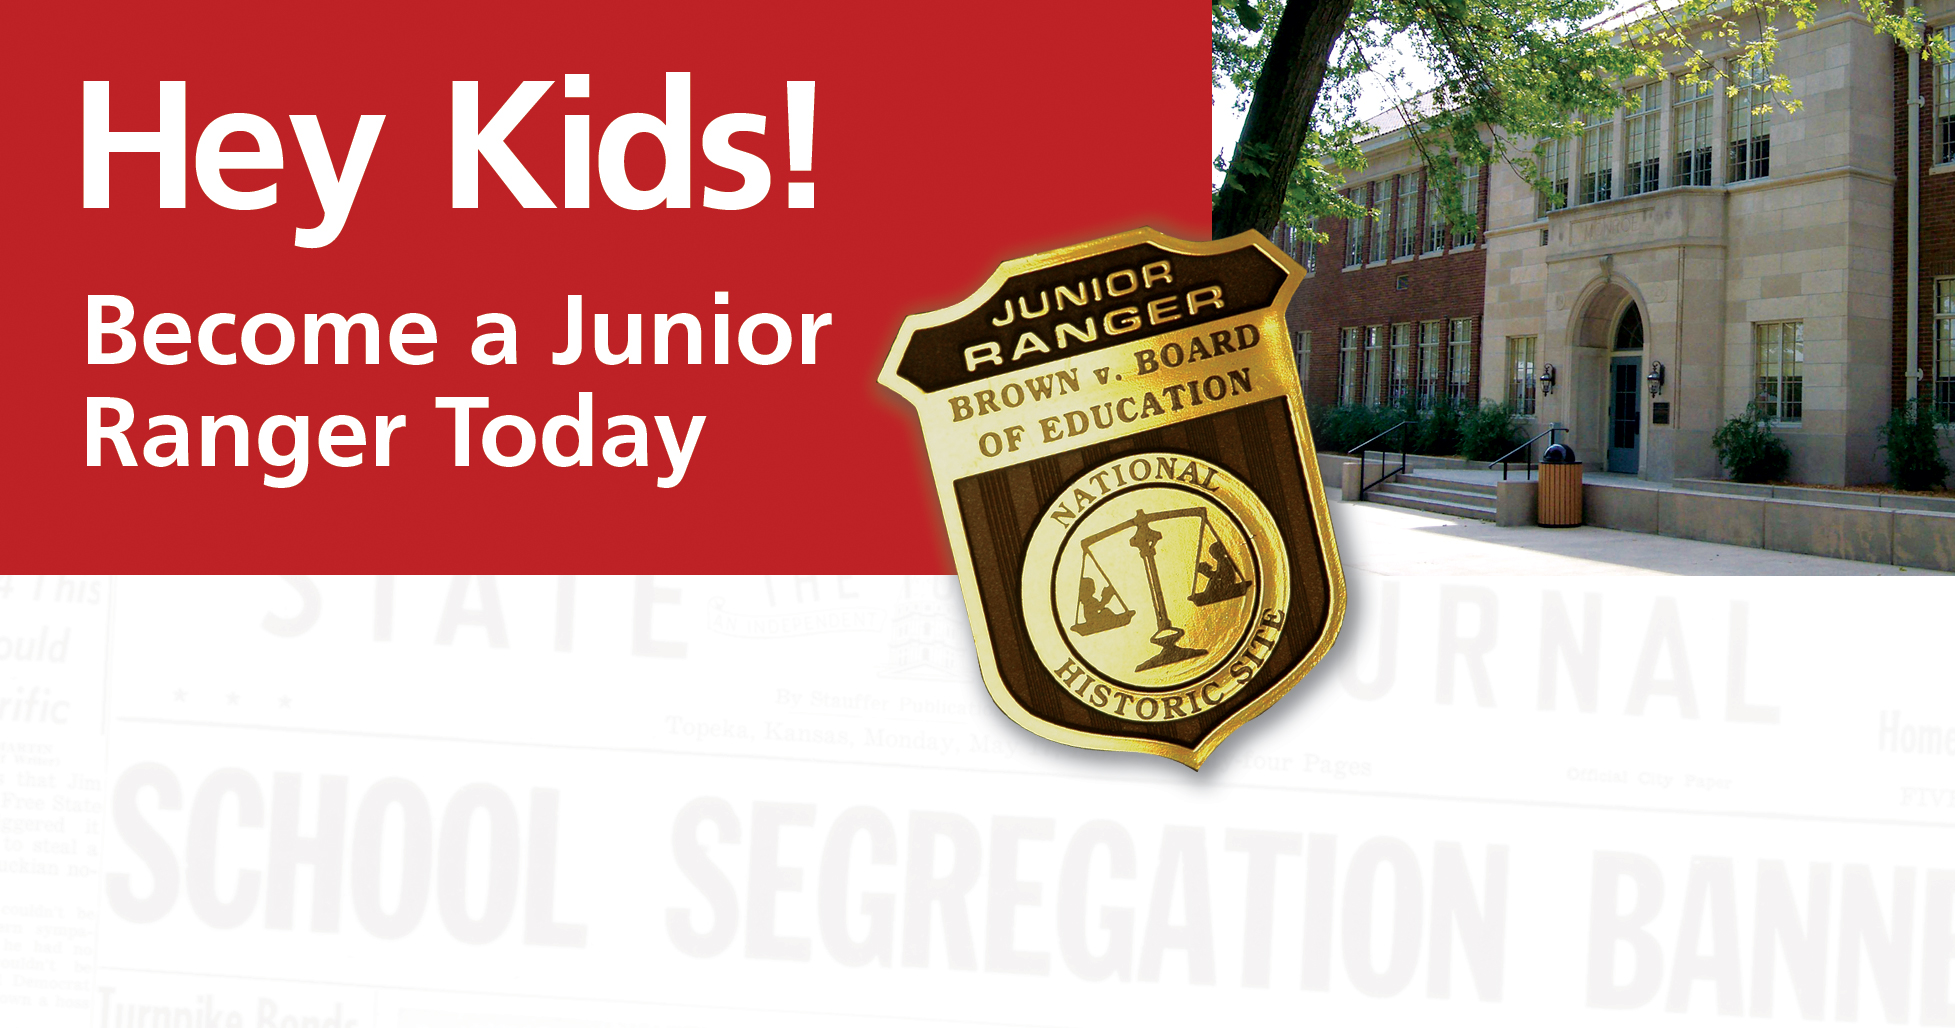 Hey Kids! become a Junior Ranger today!